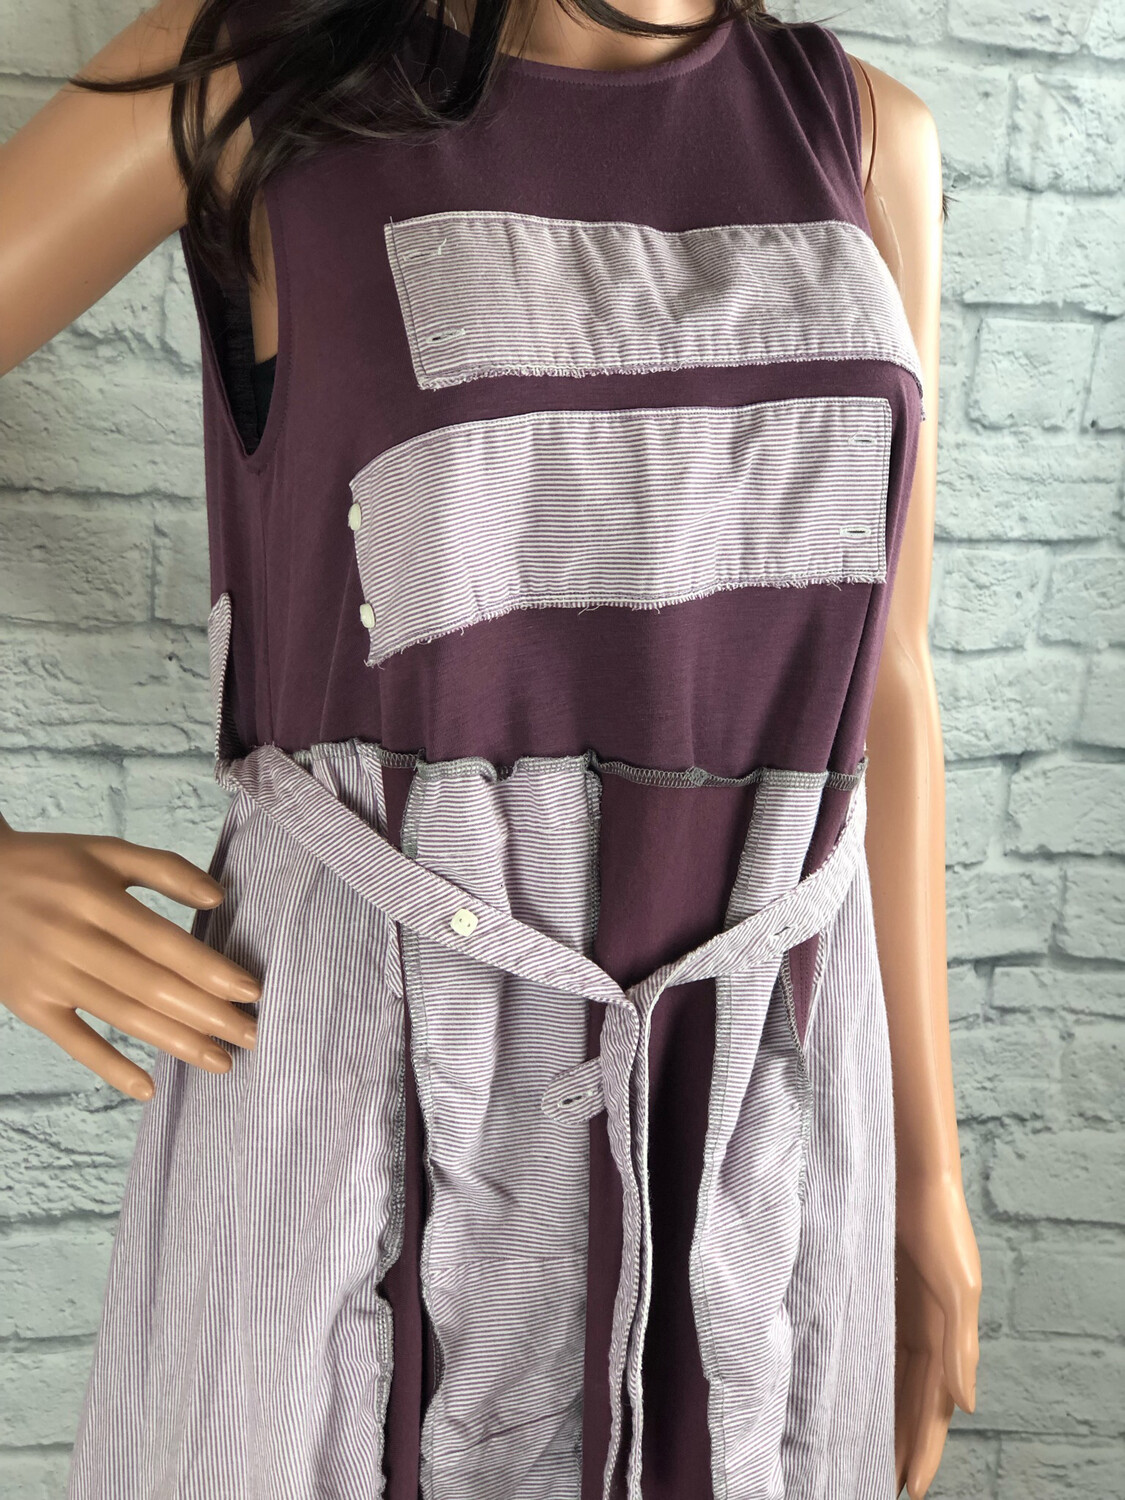 S Threads Upcycled Dress Plum Sleeveless With Men's Button Up Pieces Repurposed Fashion Size L